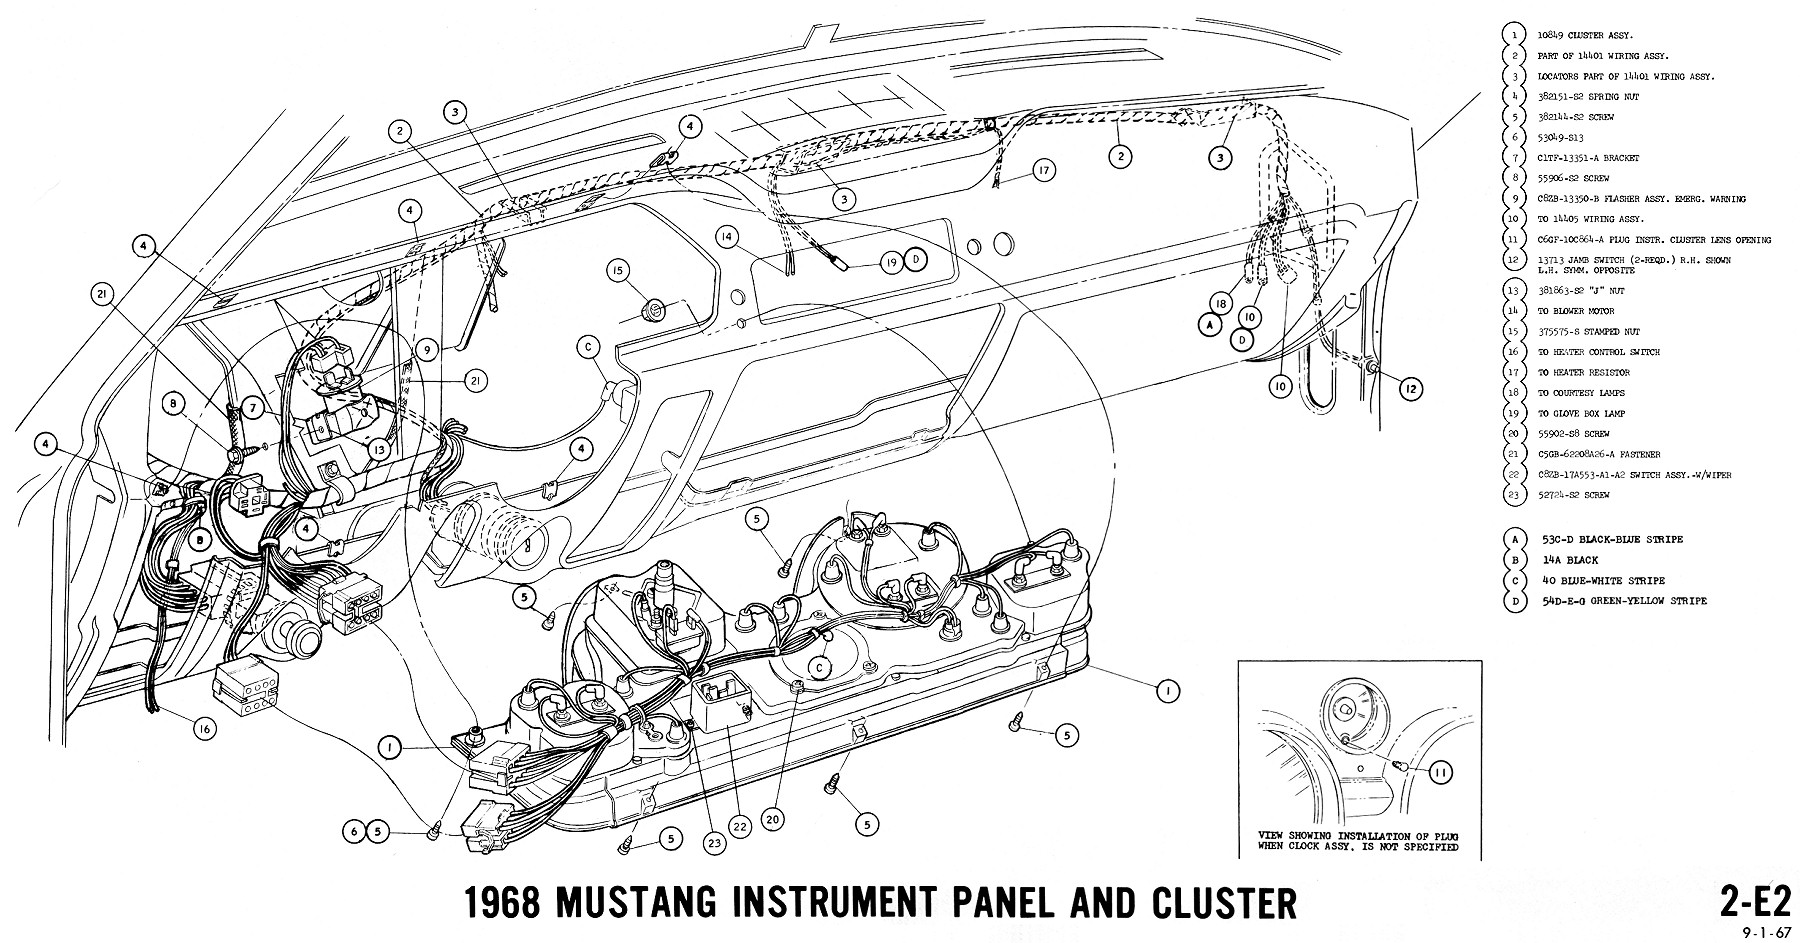 1968 Mustang Wiring Diagrams And Vacuum Schematics Average Joe Chrysler Diagram Instruments 2